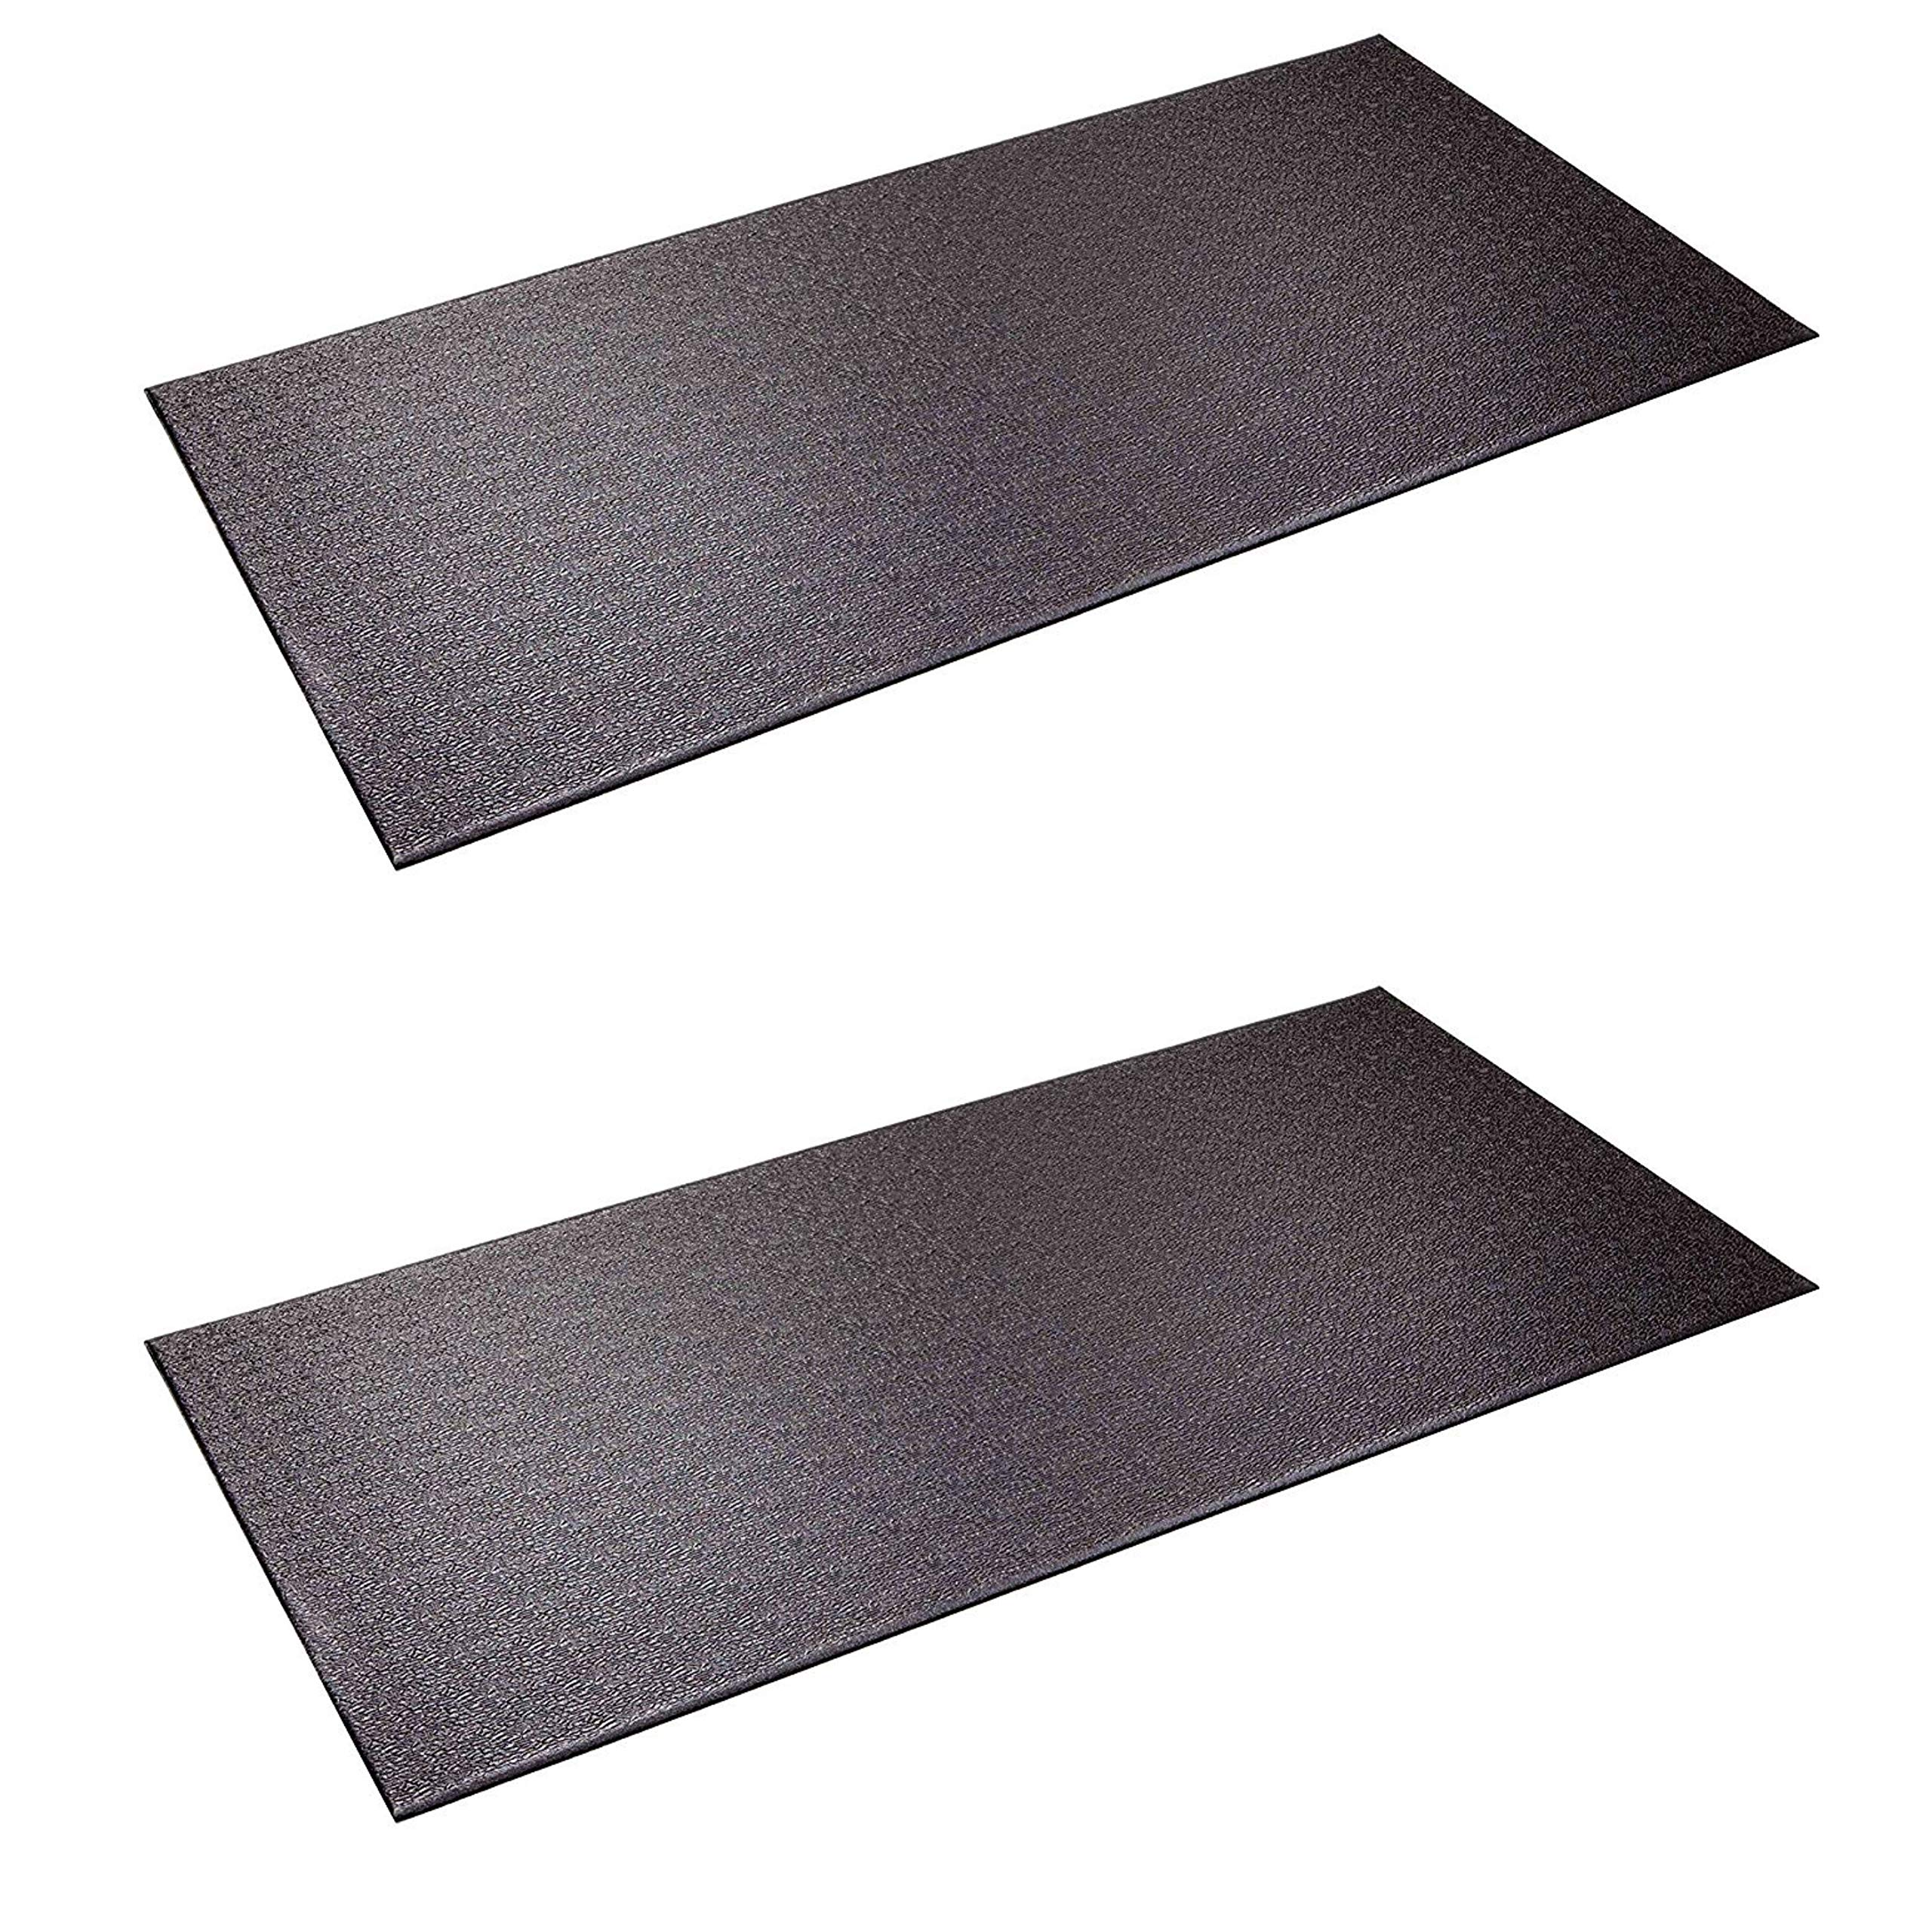 SuperMats Heavy Duty Equipment Mat 13GS Made in U.S.A. for Indoor Cycles Recumbent Bikes Upright Exercise Bikes and Steppers (2.5 Feet x 5 Feet) (30-Inch x 60-Inch) (76.2 cm x 152.4 cm) (Тwо Расk) by SuperMats (Image #1)